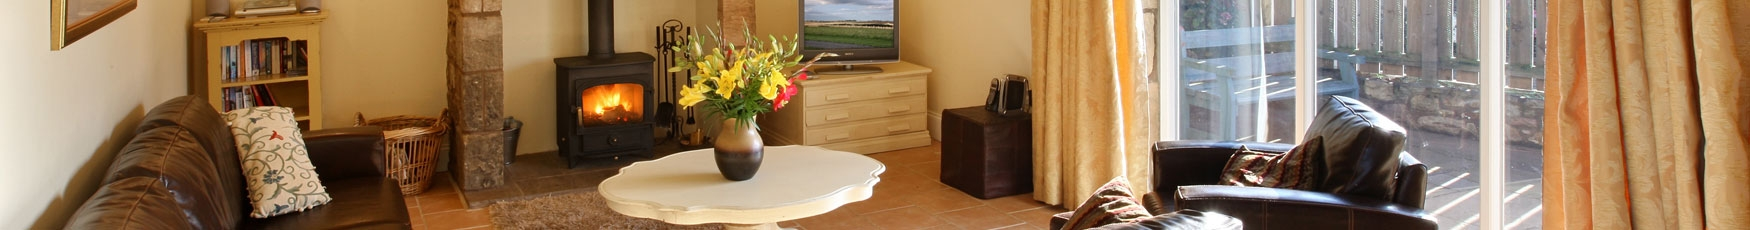 Self catering cottages Northumberland